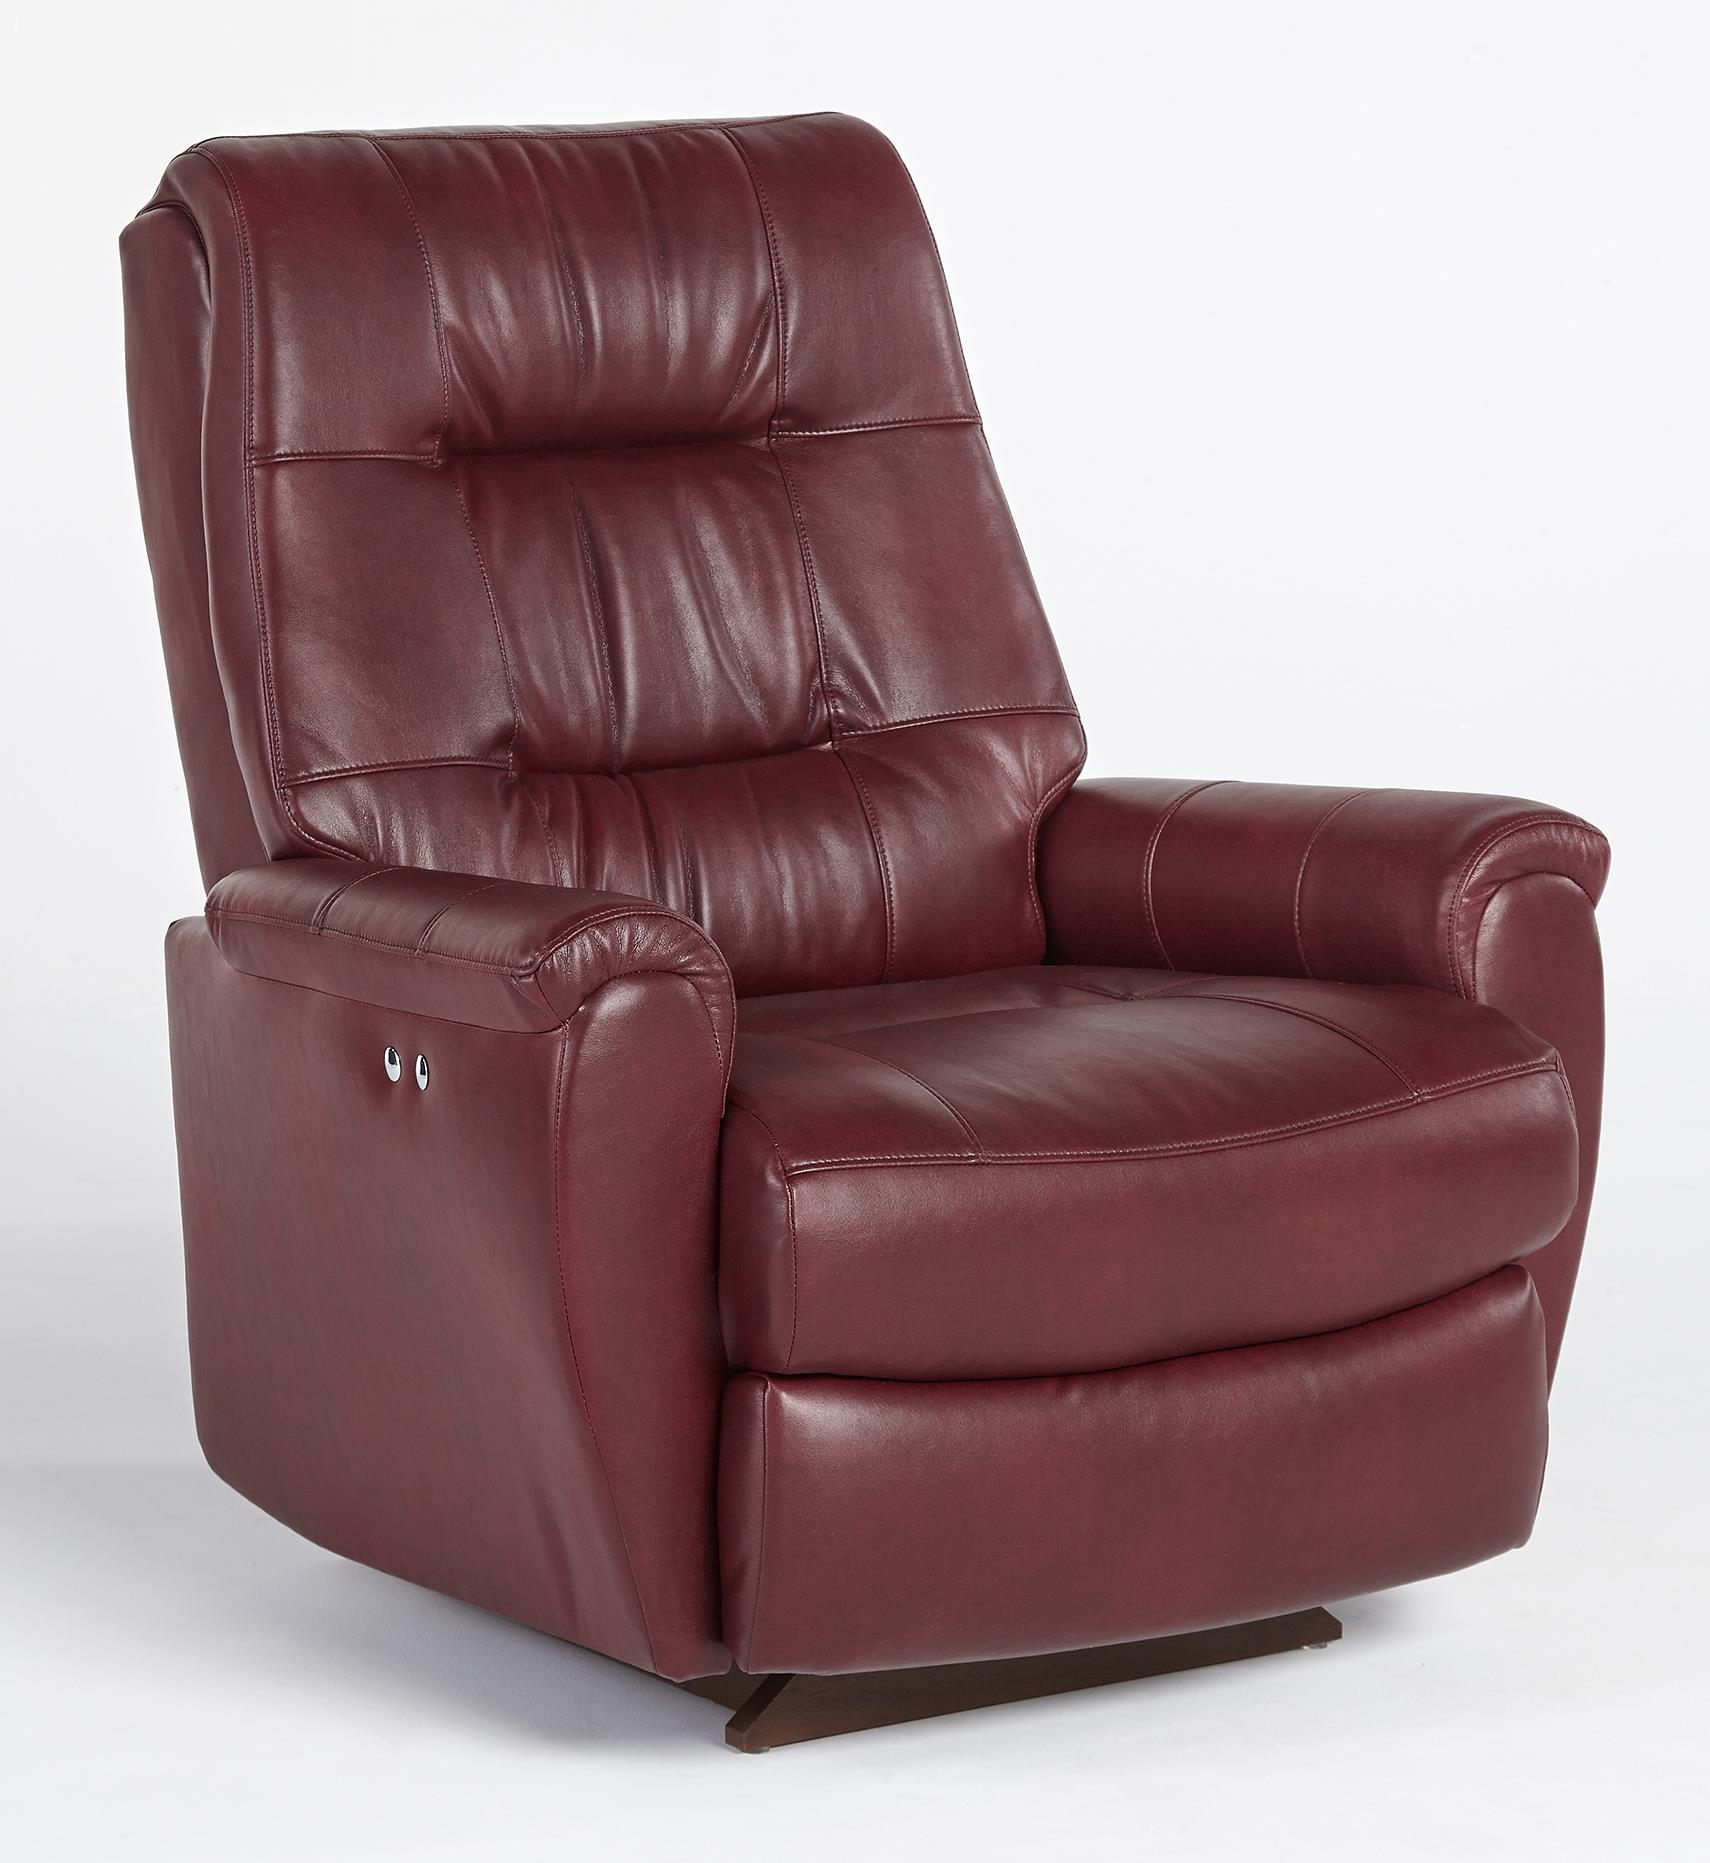 Recliners petite felicia swivel rocker recliner with button tufted back by best home - Best furniture ...